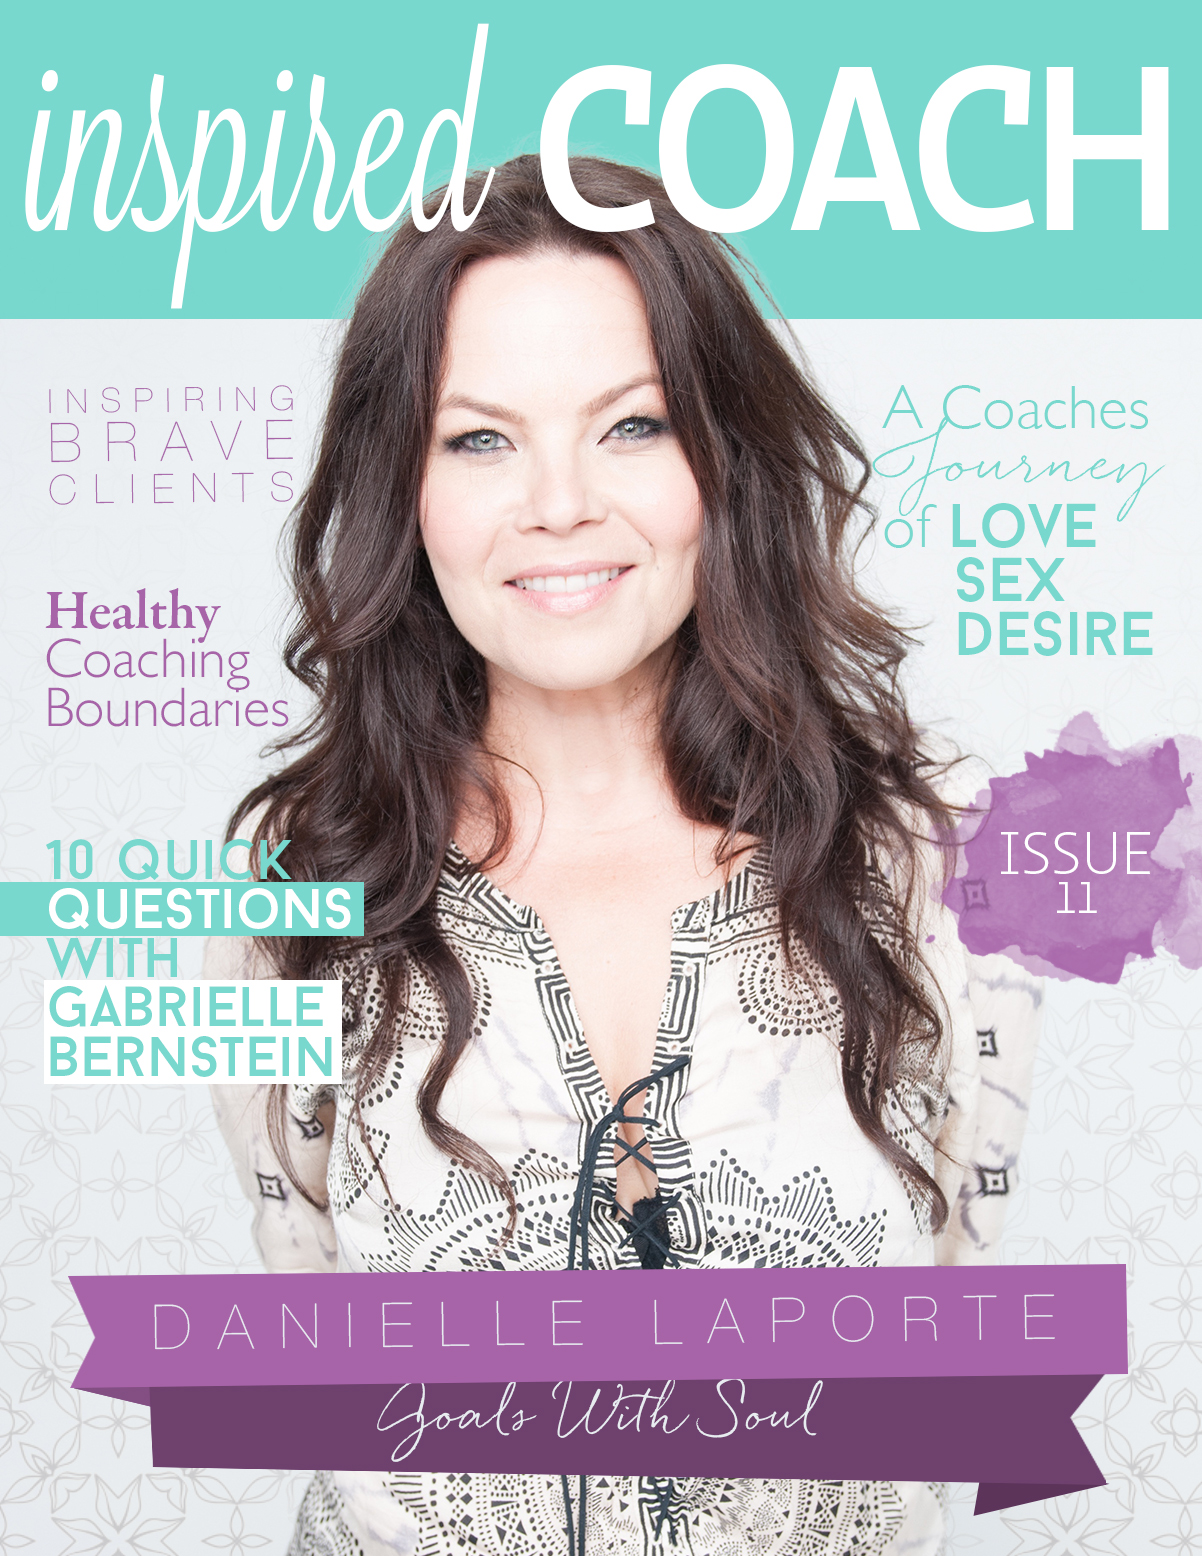 Le Meilleur Inspired Coach Magazine By The Beautiful You Coaching Ce Mois Ci